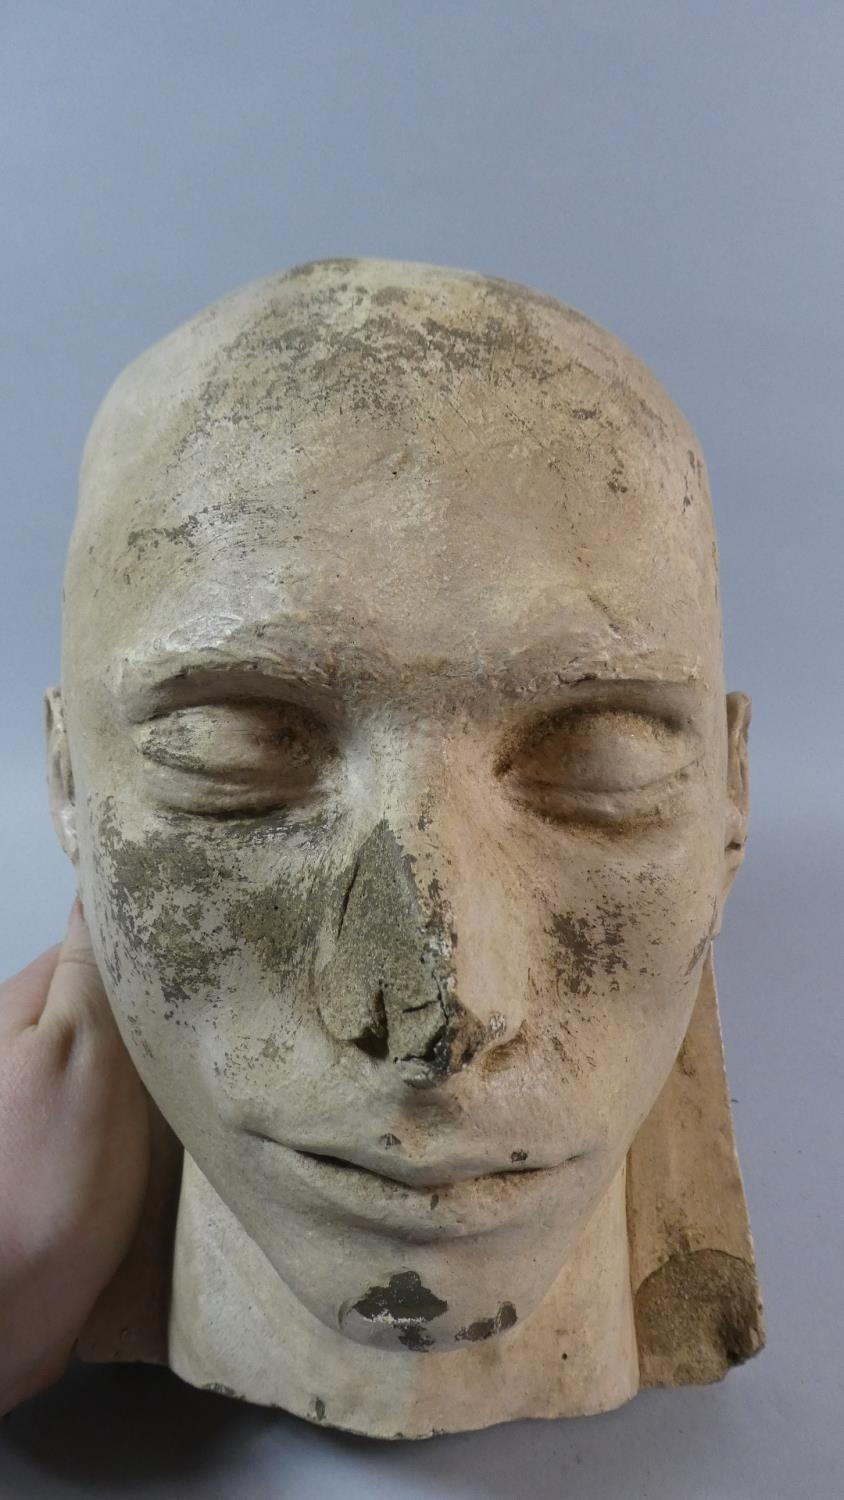 A 19th Century Plaster Death Mask of a Shaven Headed Man, Possibly a Convict or Asylum Inmate. - Image 2 of 7